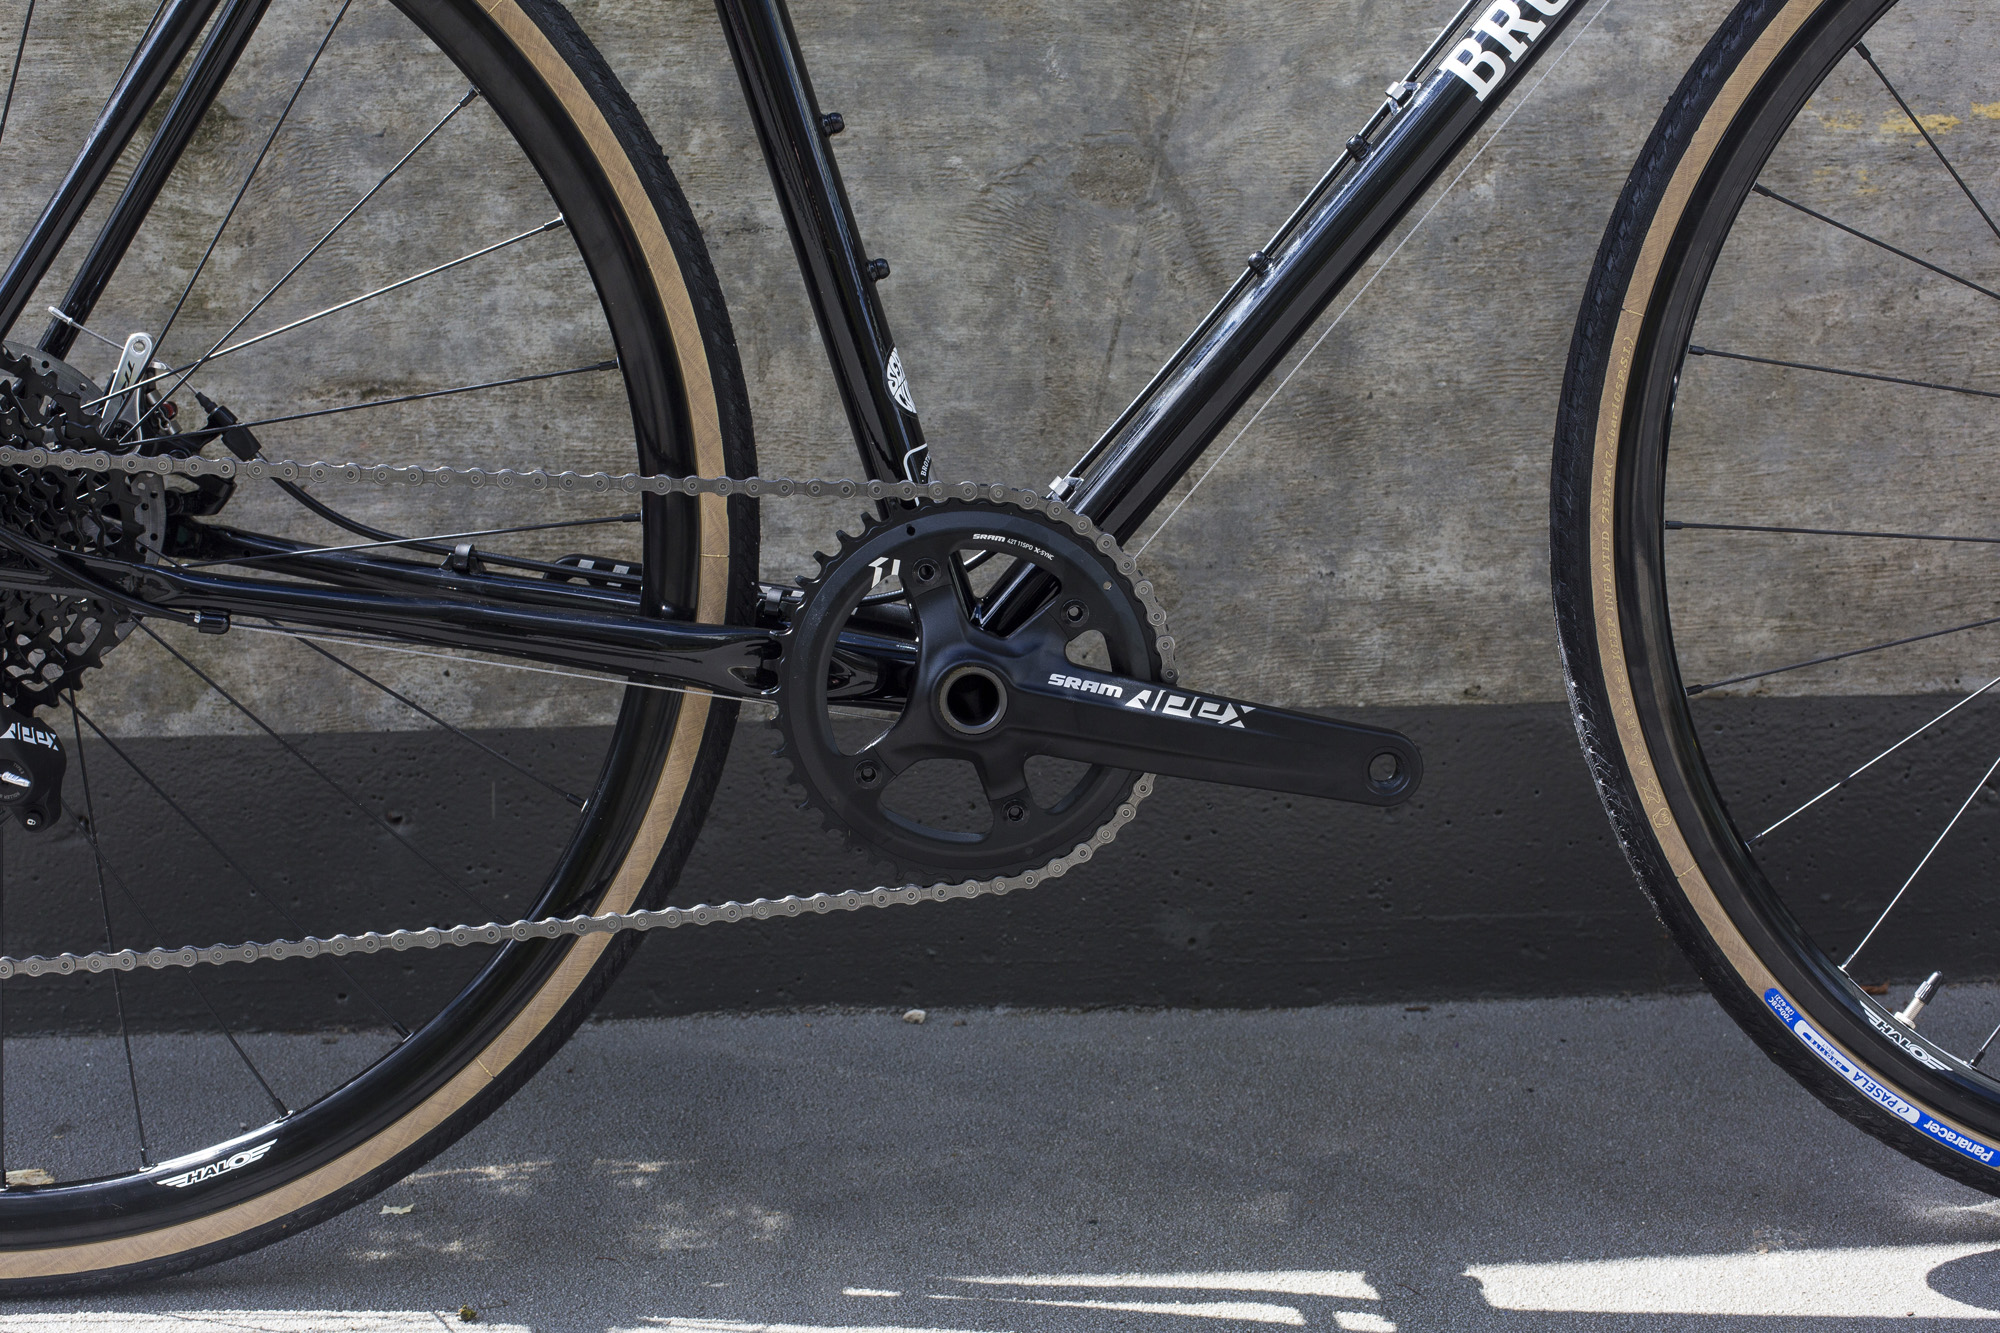 seabass-cycles-instore-bikes-25-april-2019-brother-cycles-kepler-disc-complete-black-5192.jpg